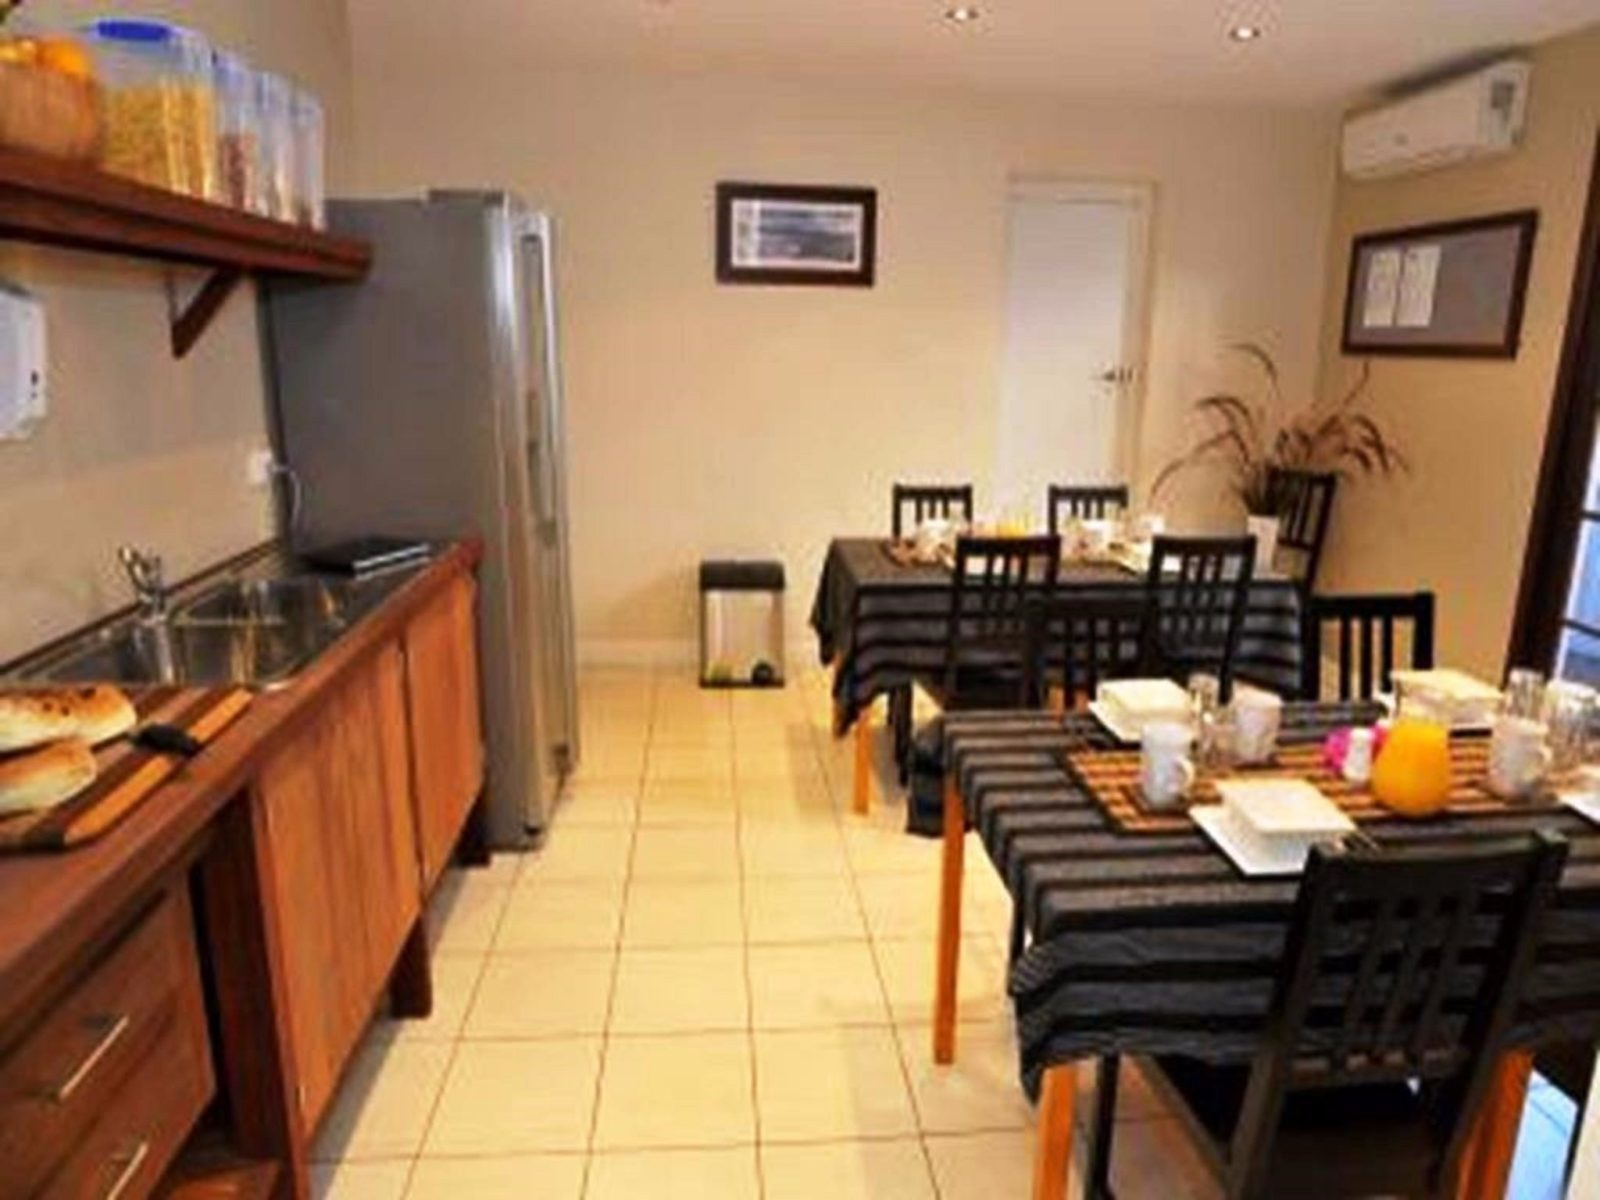 Waikiki Beach Bed and Breakfast, Rockingham, Western Australia